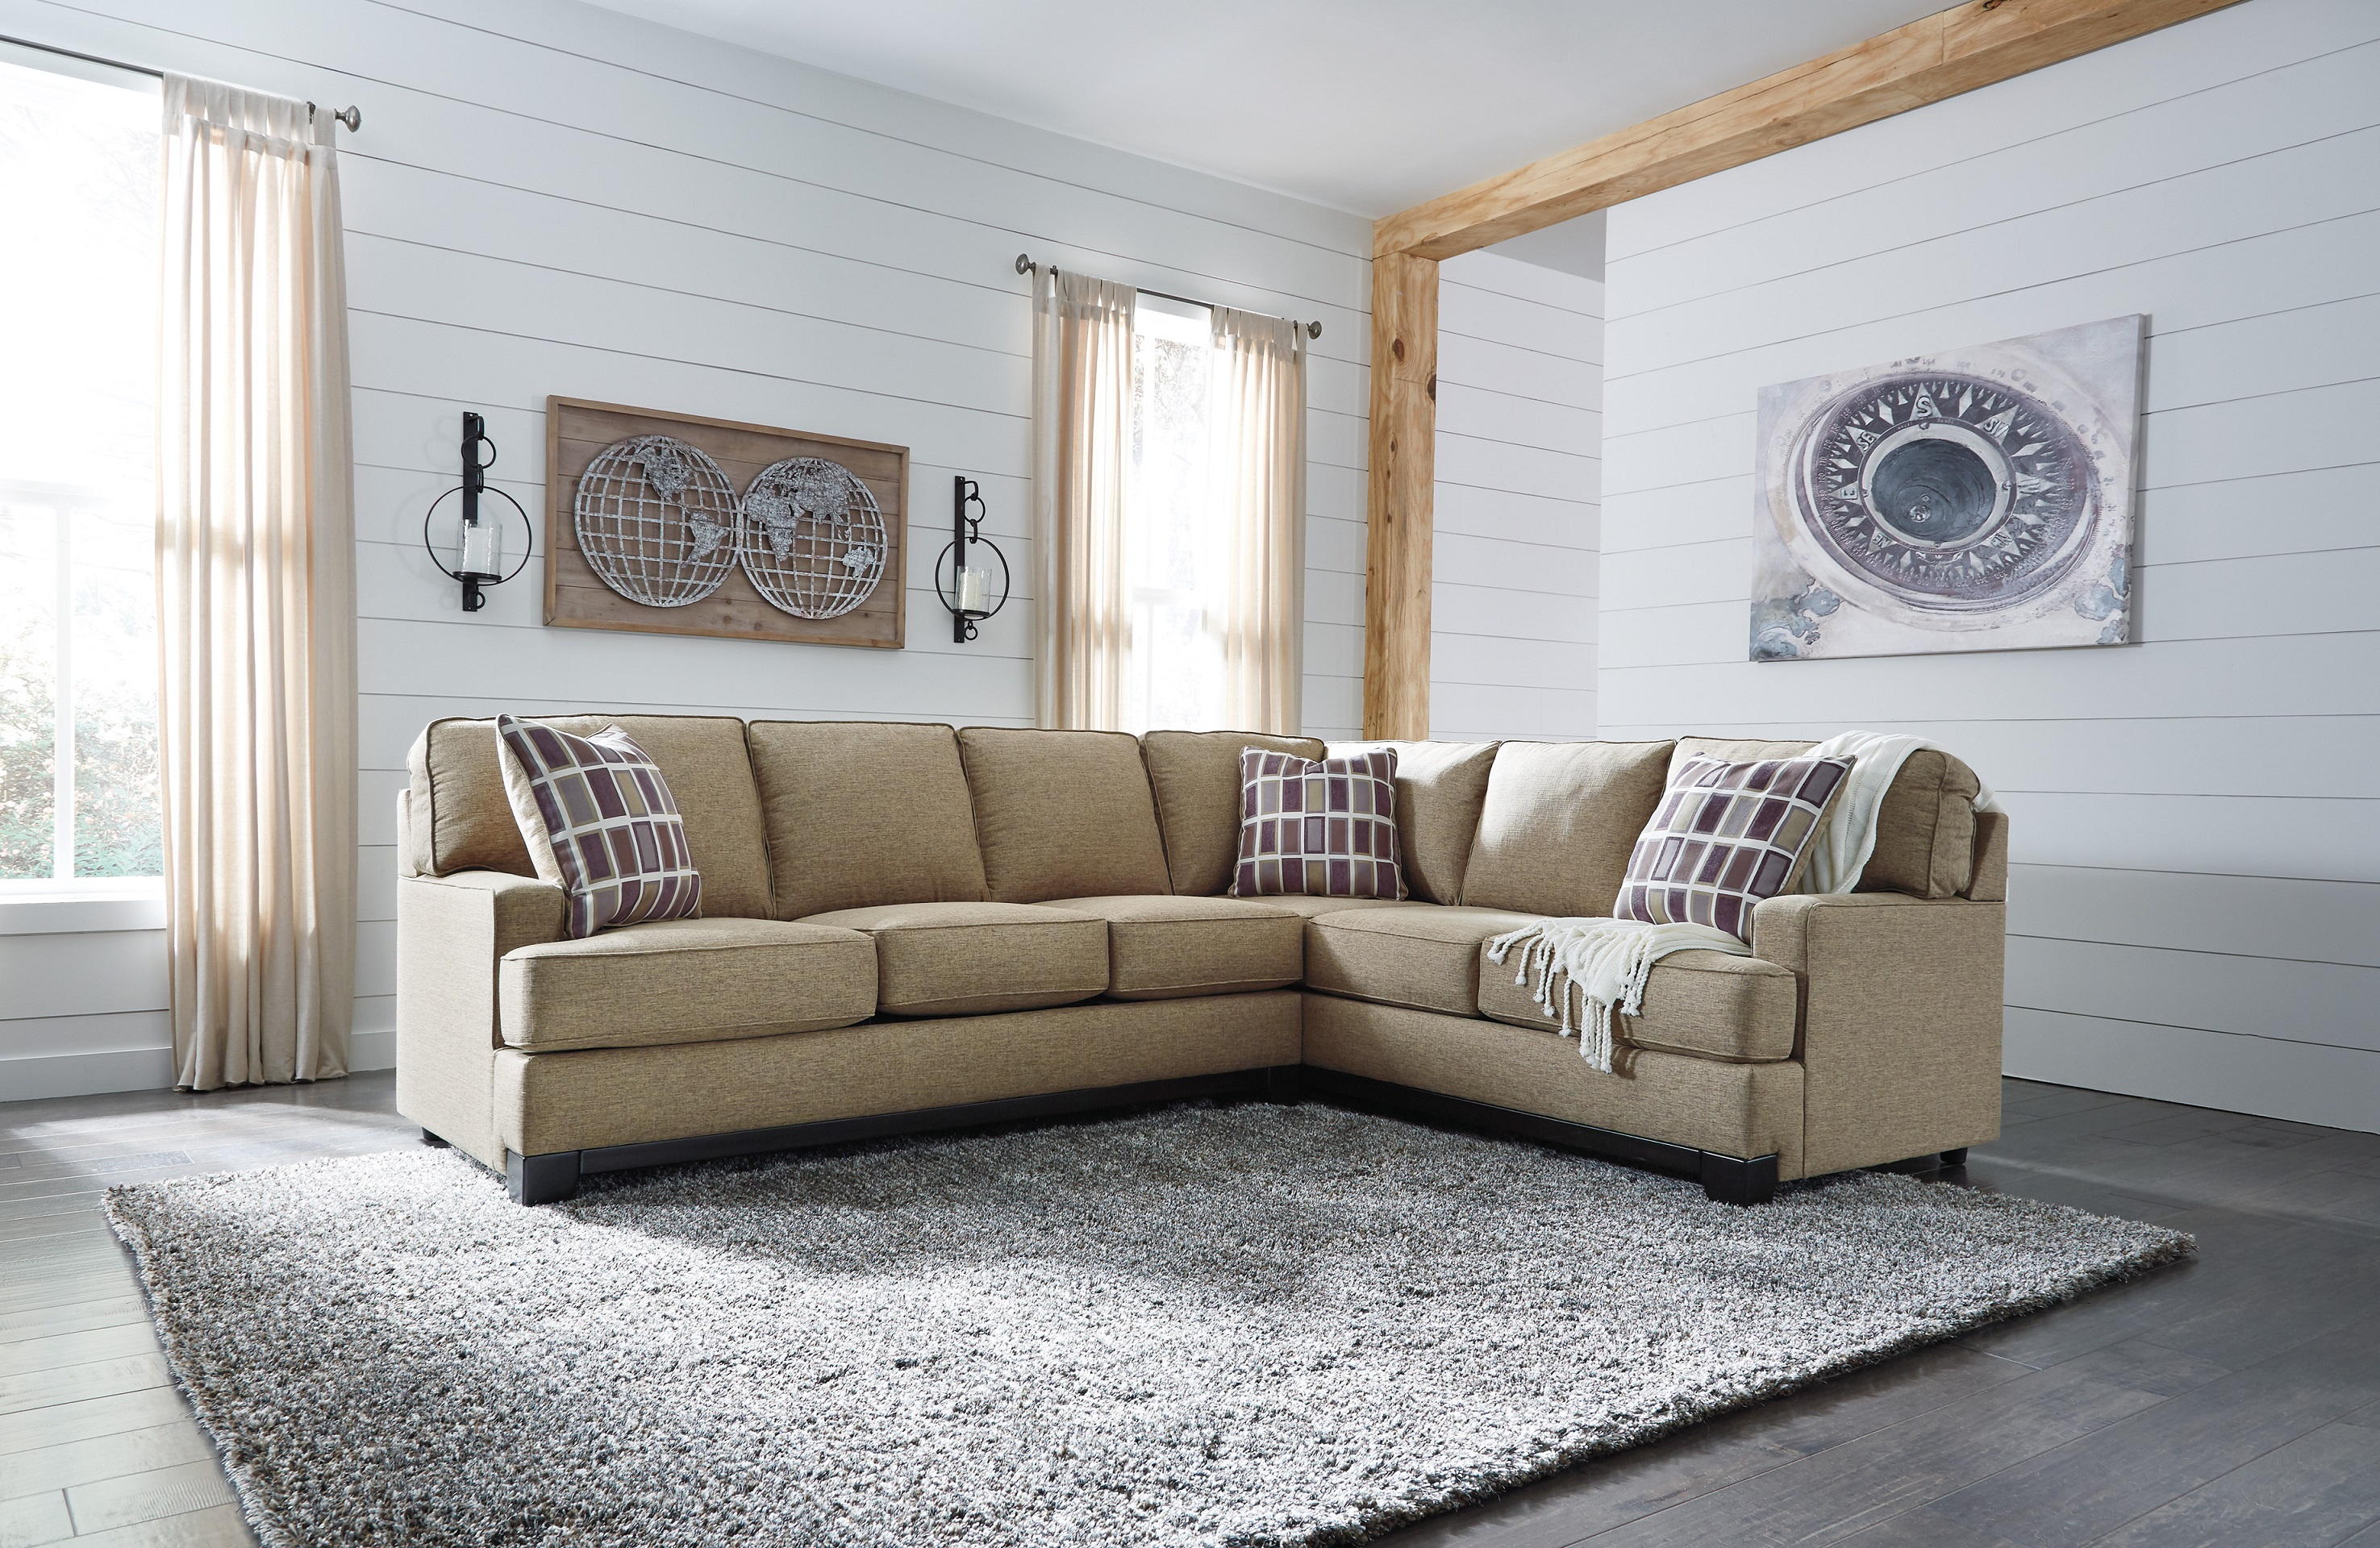 Larkhaven 49 Sectional Sofa by Ashley Furniture Amber Color